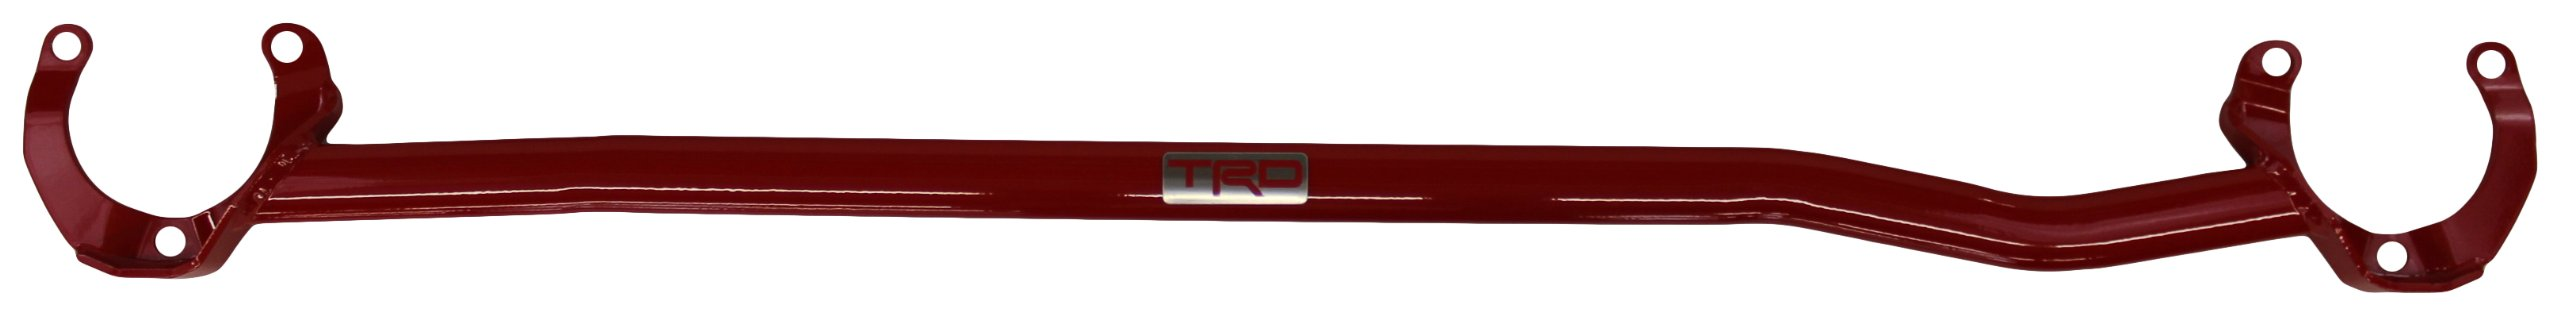 Genuine Toyota Parts PTR02-12080 TRD Chassis Brace by Genuine Toyota